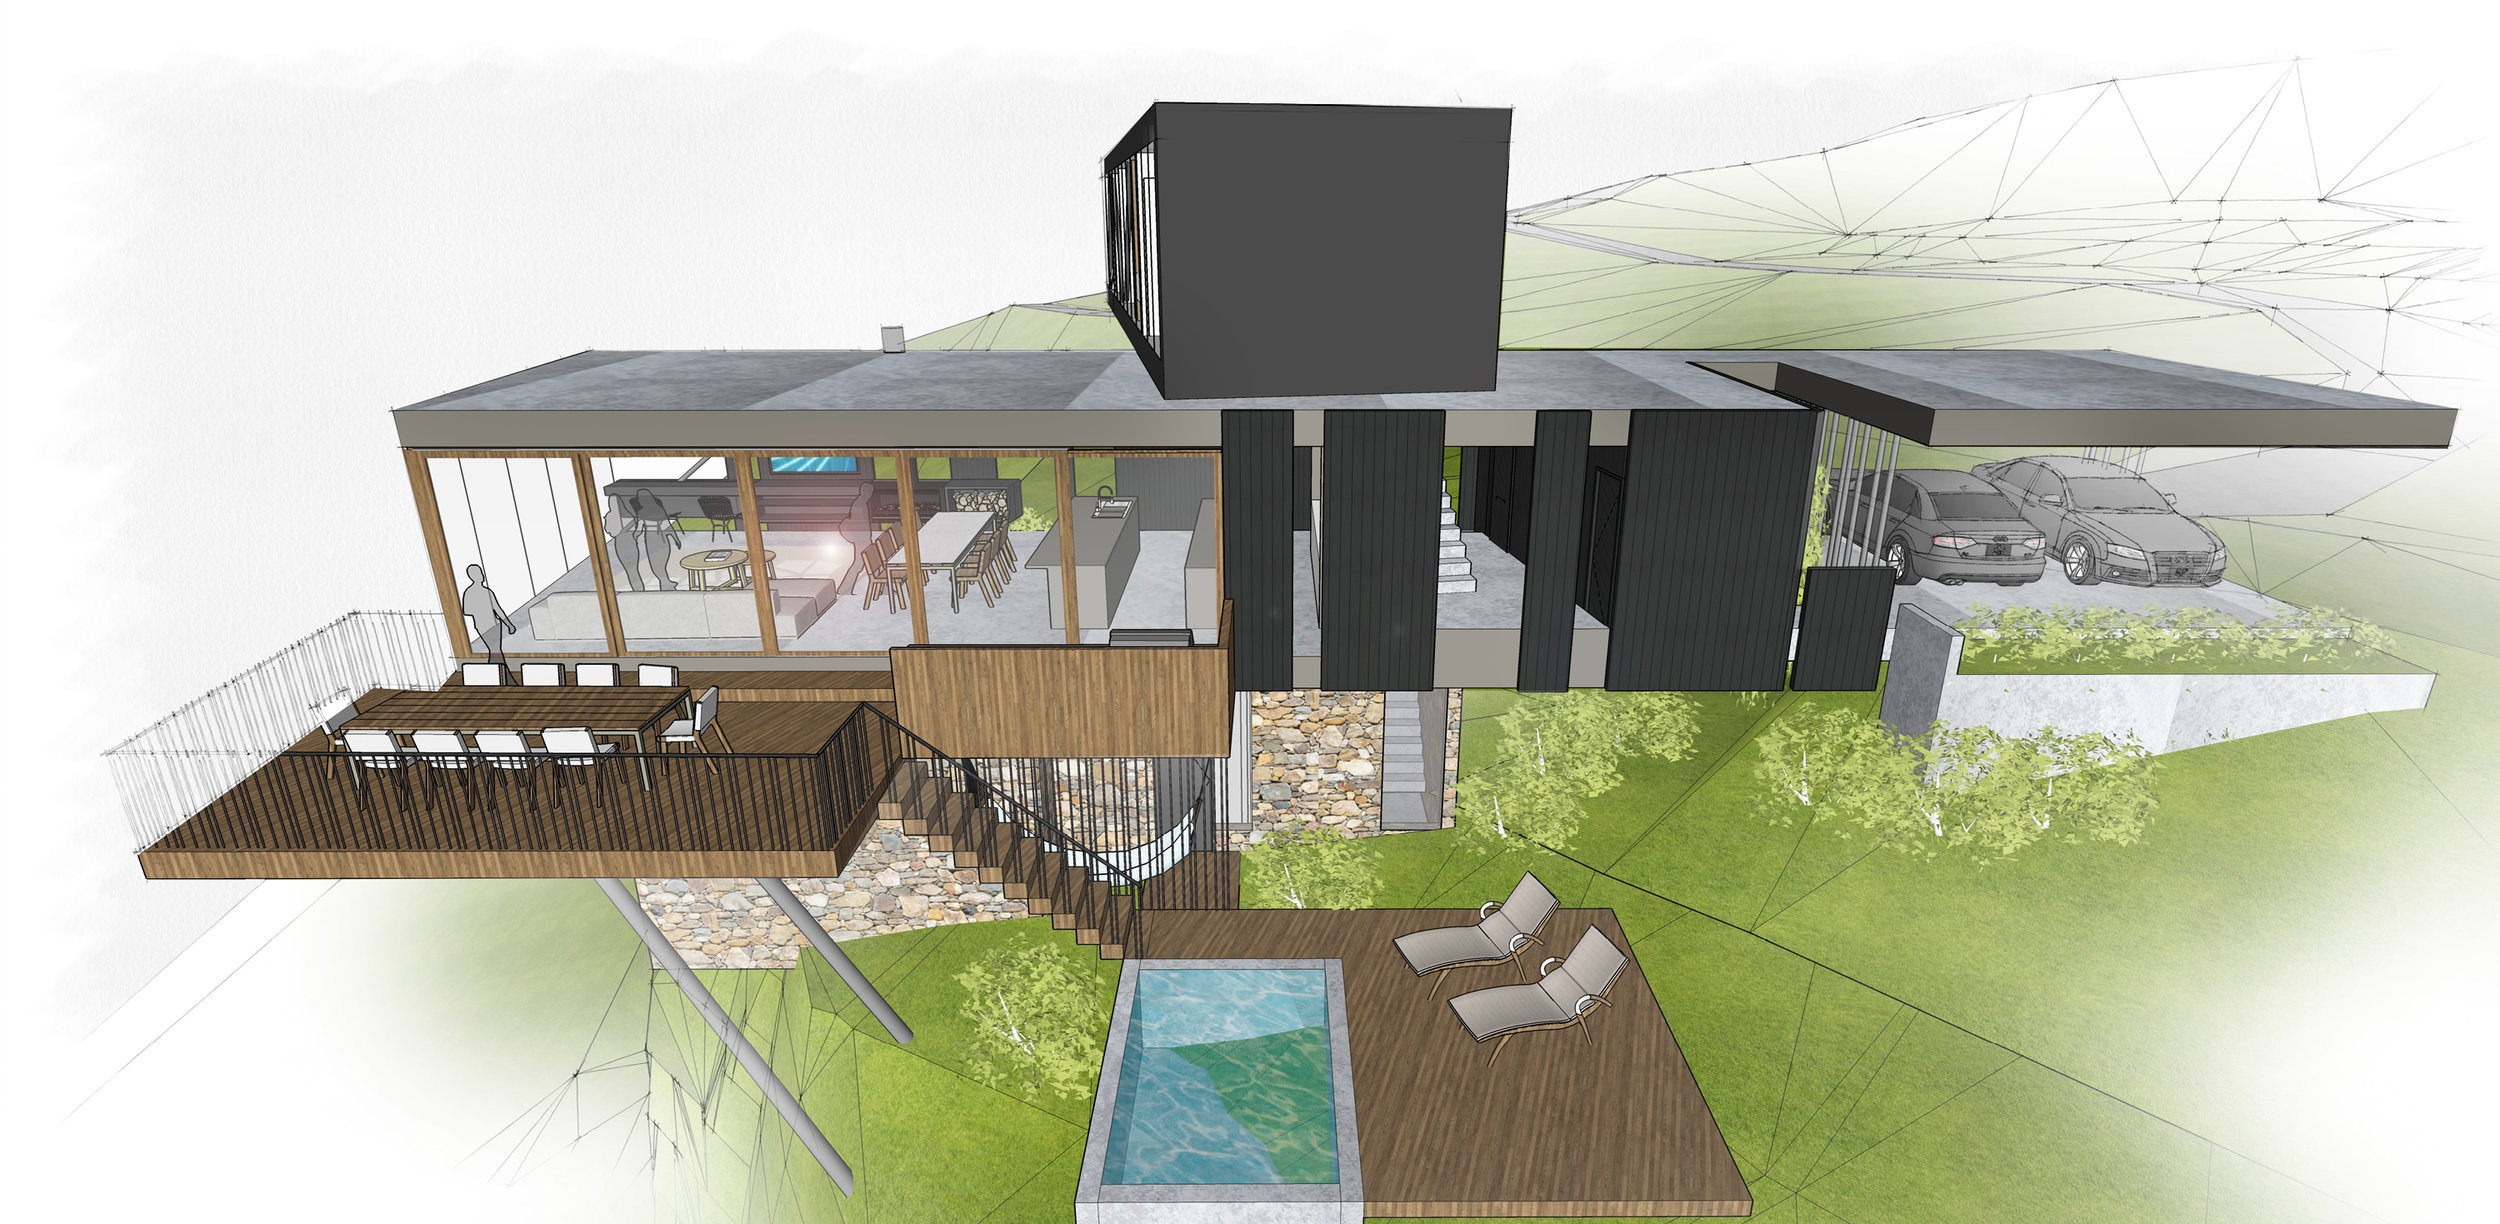 The cantilevered deck cascades down to the infinity pool area